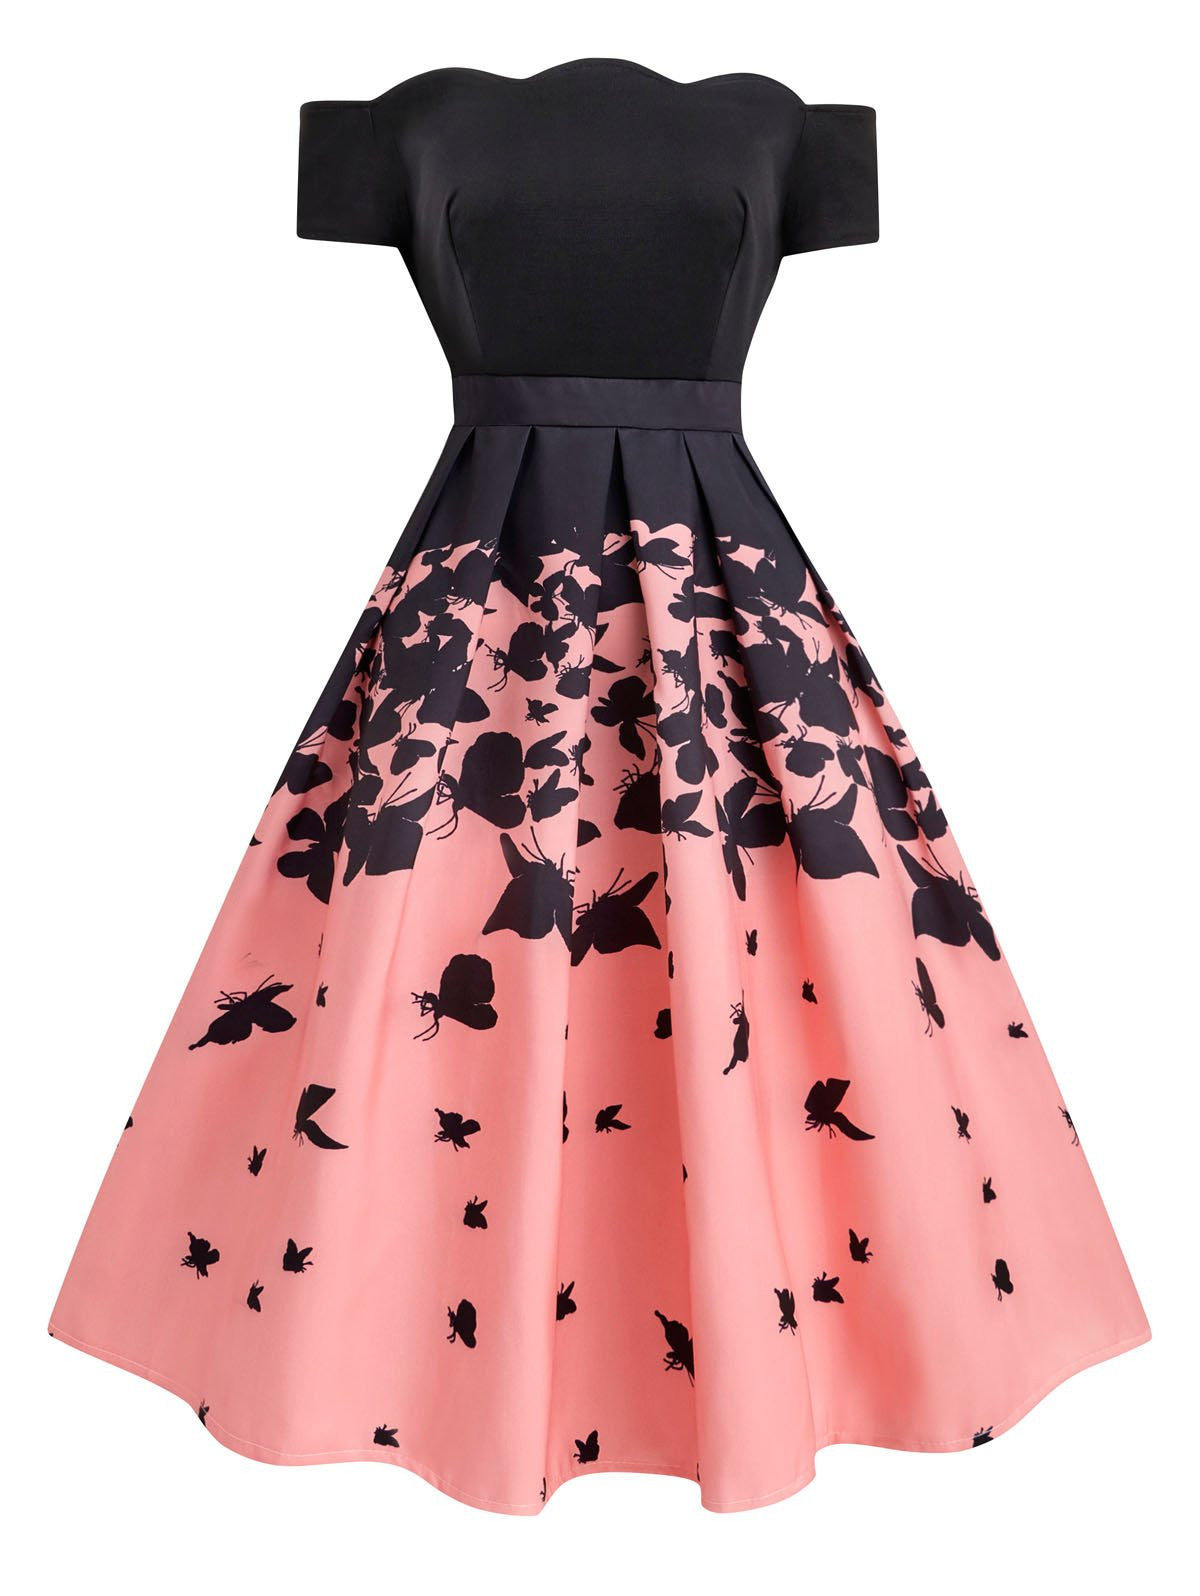 686bb15cb1f Black 1950s Butterfly Swing Dress – Retro Stage - Chic Vintage ...